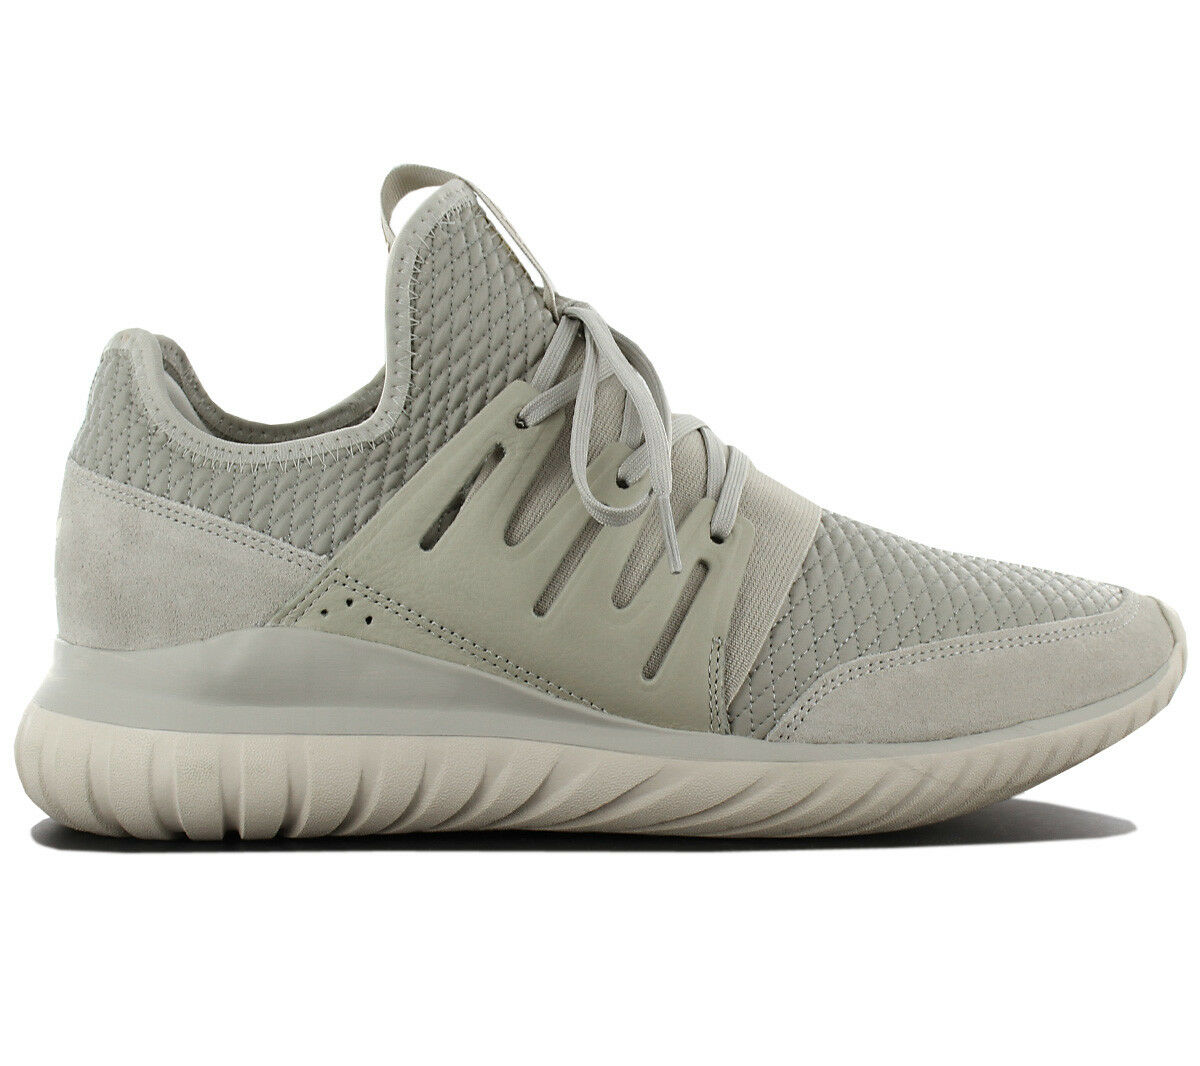 Adidas Originals Tubular Radial Chaussures Baskets Retro de Sport Shadow BB2397